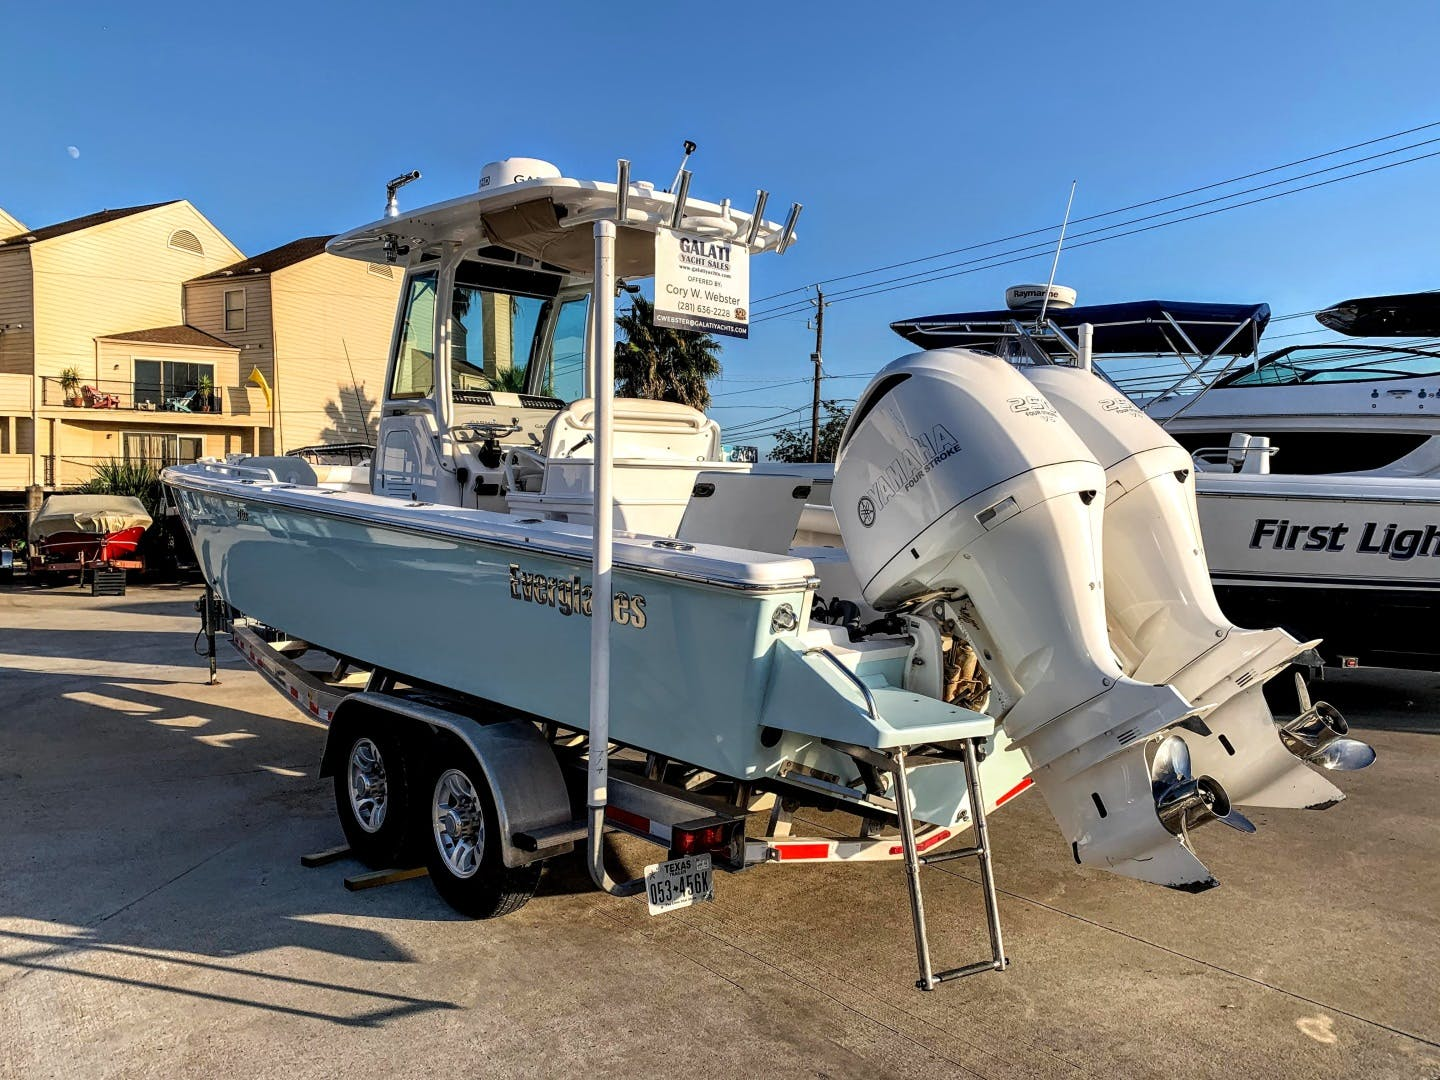 2018 Everglades 27' 273 Center Console No Name | Picture 3 of 20